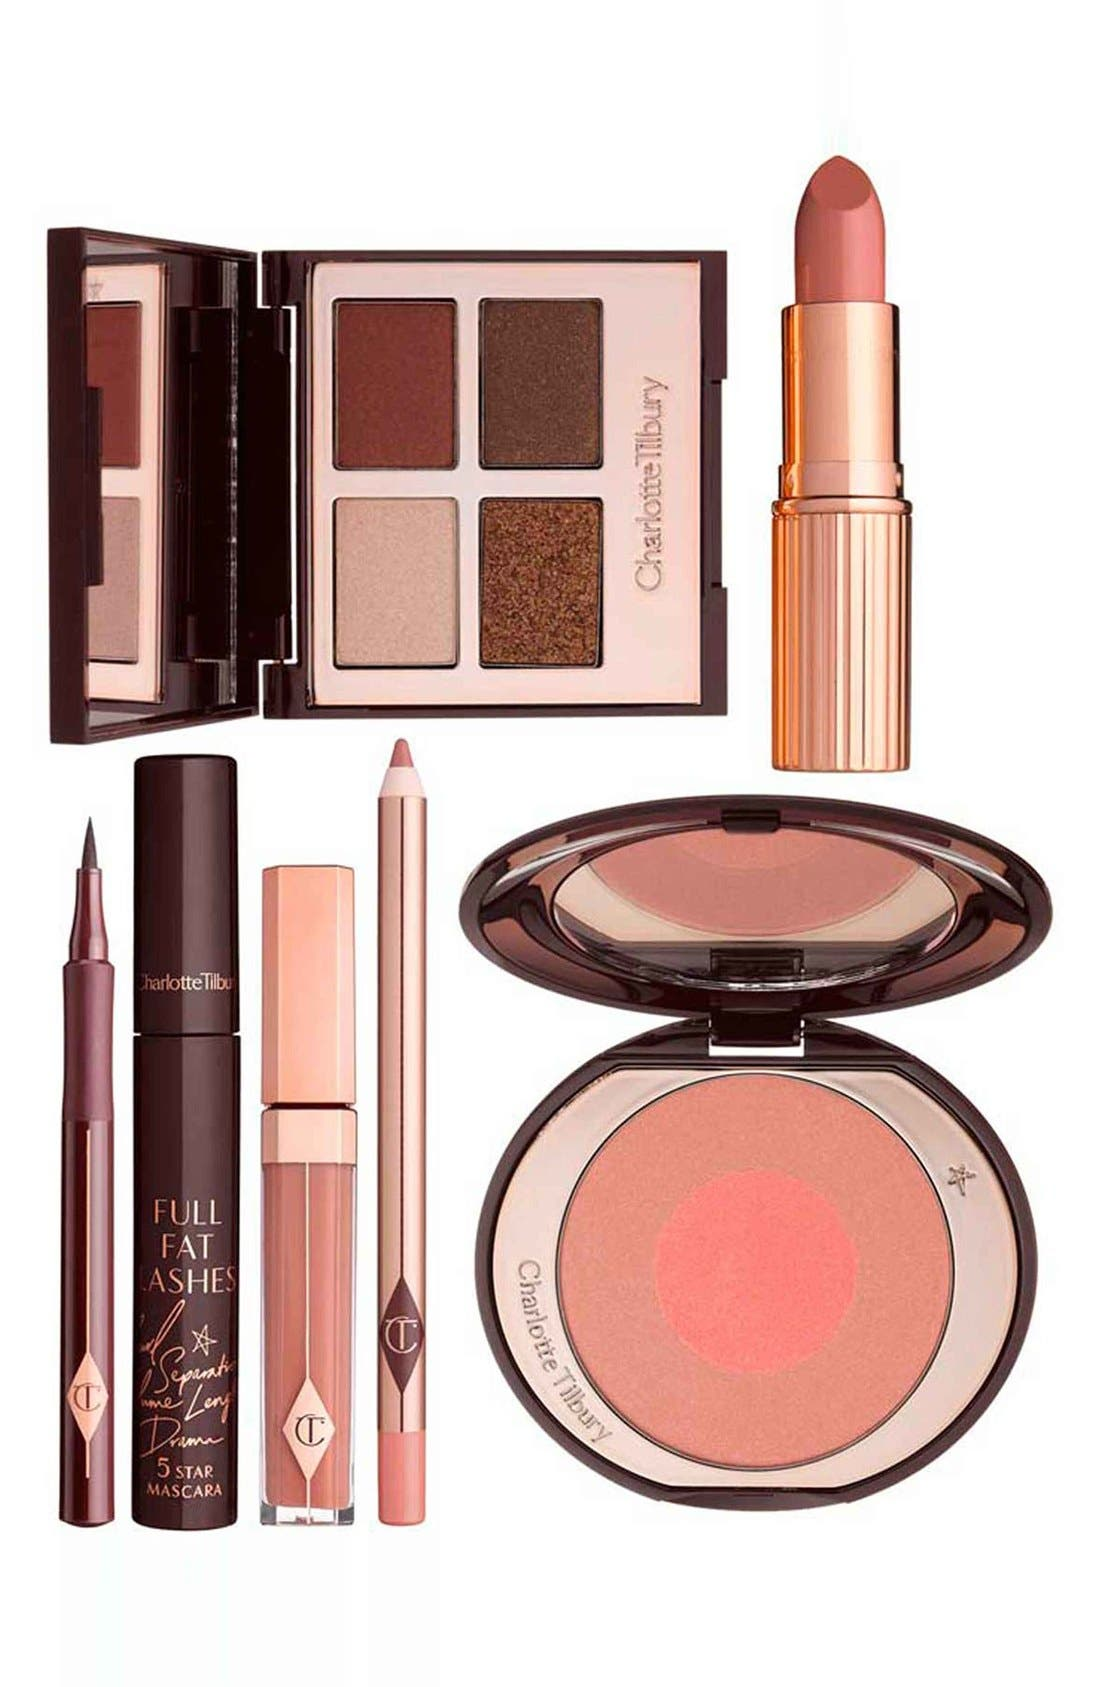 Charlotte Tilbury 'The Dolce Vita' Set ($246 Value)